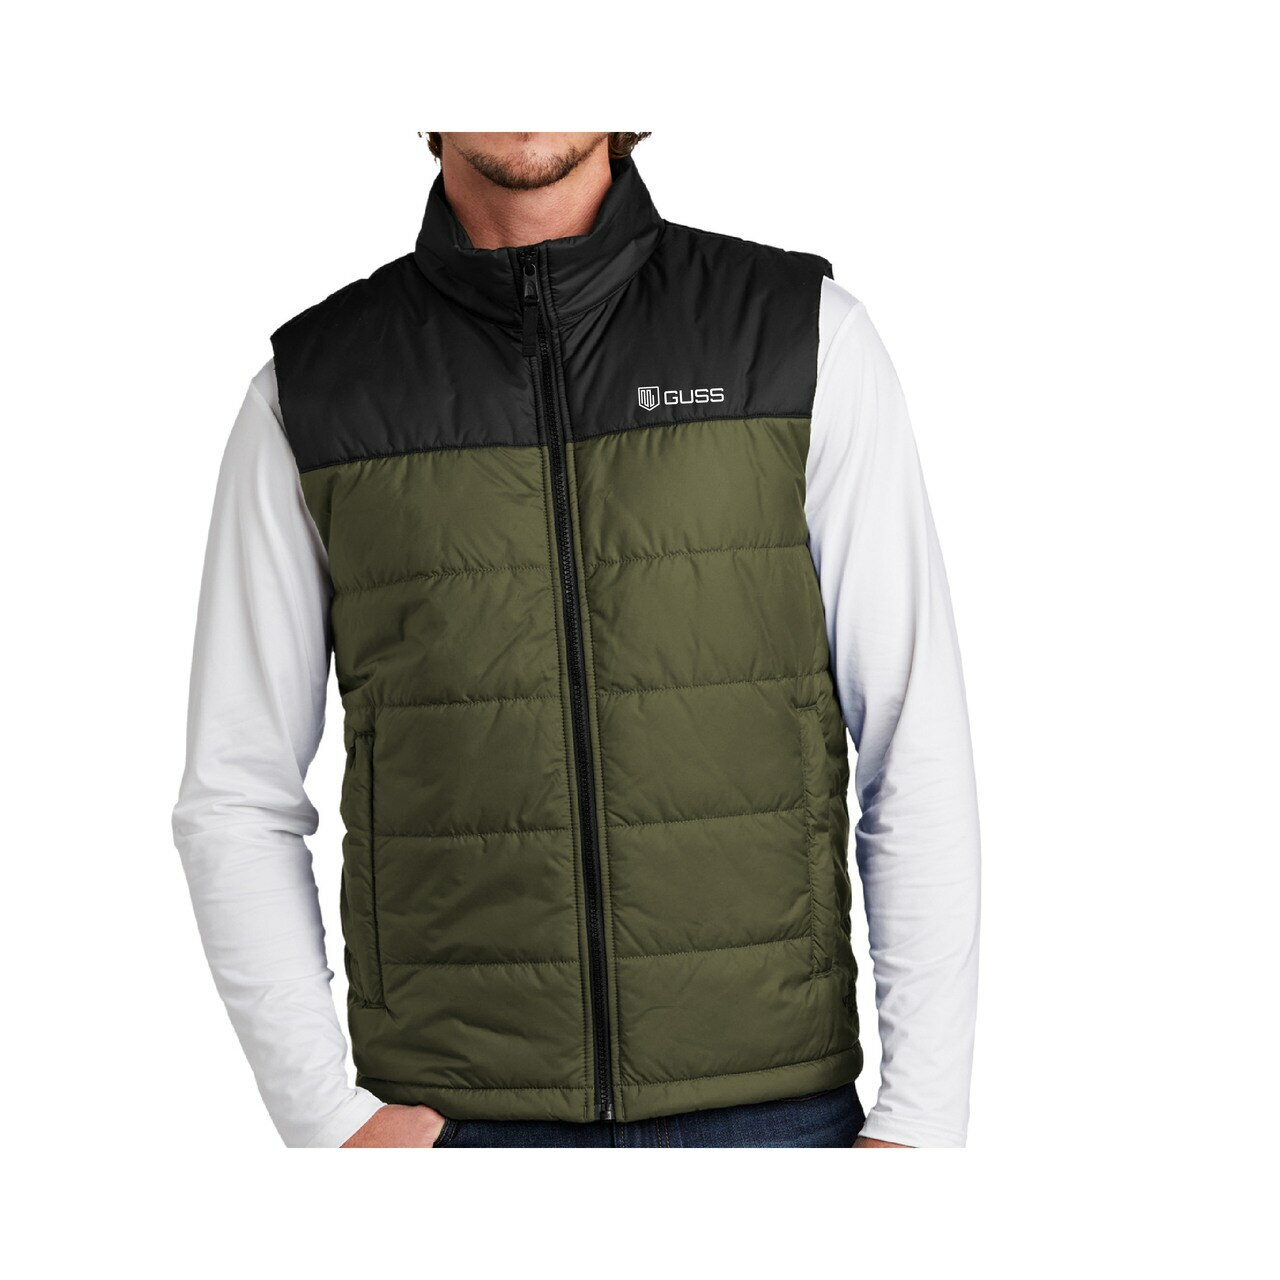 Men - North Face Everyday Packable Puffy Vest - Burnt Olive Green